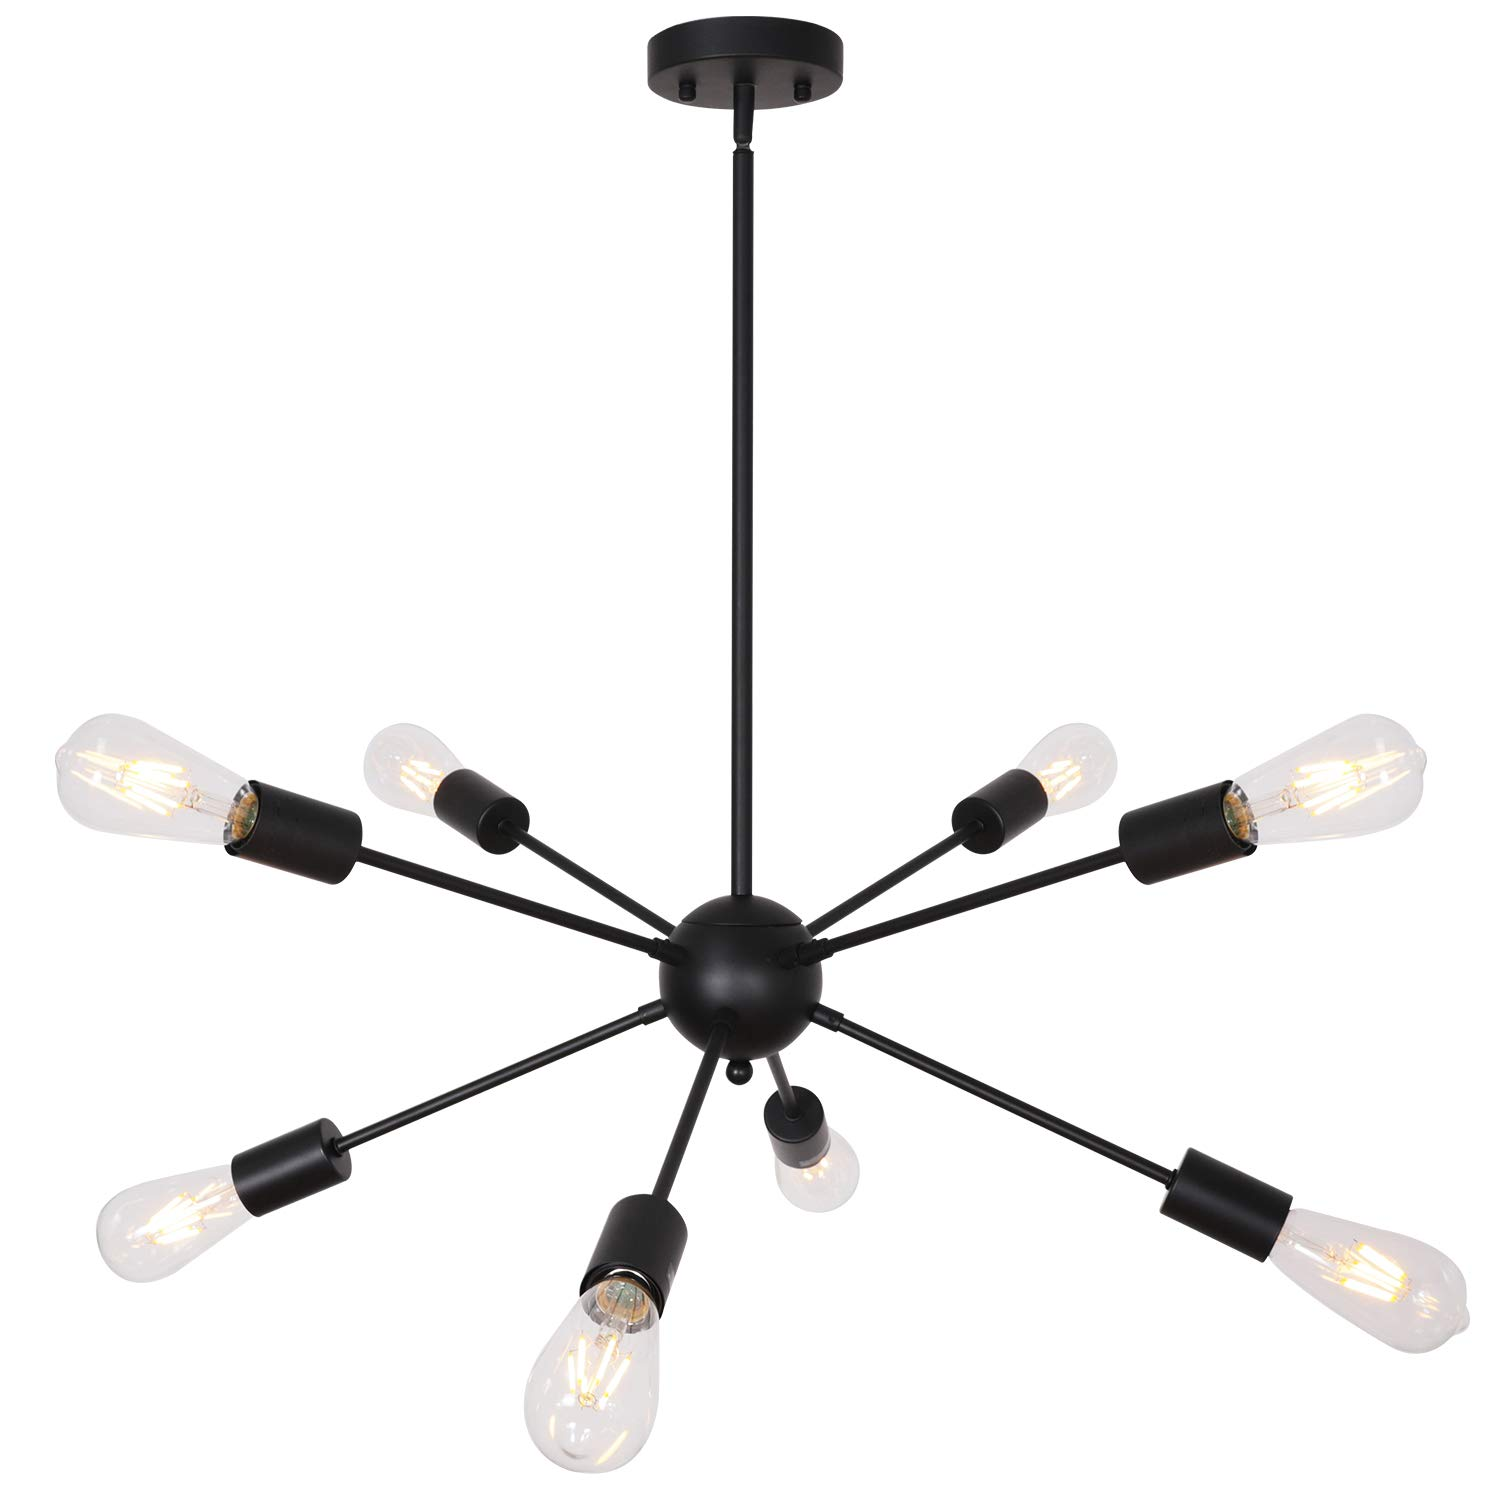 TUDOLIGHT 8 Light Mid Century Modern Sputnik Chandelier Black Industrial Pendant Lighting Fixture for Dining Room Living Room Bedroom UL Listed